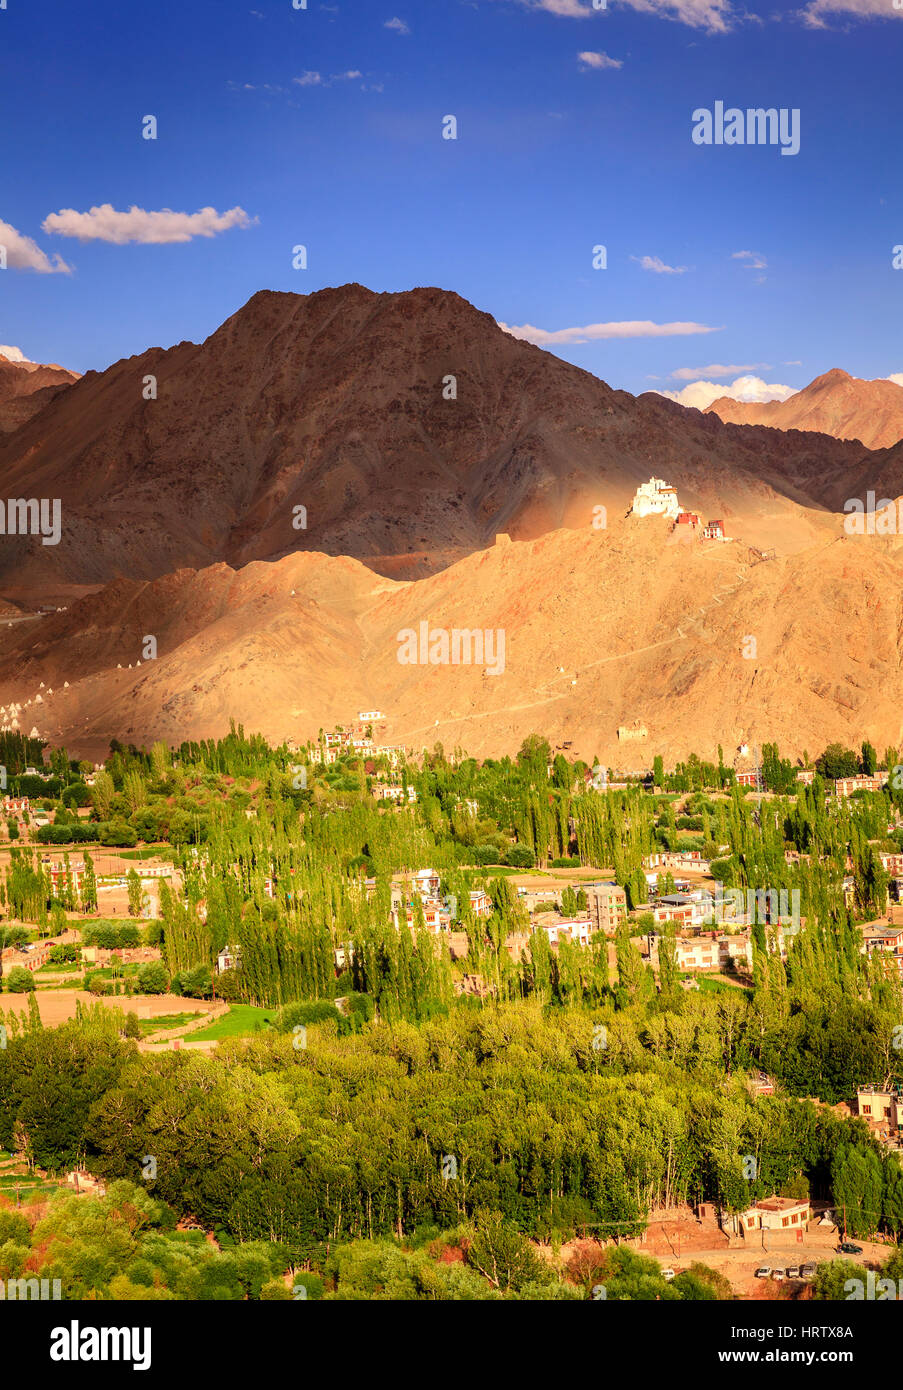 Bird's eye view of city of Leh in Ladakh, Kashmir and surrounding mountains - Stock Image